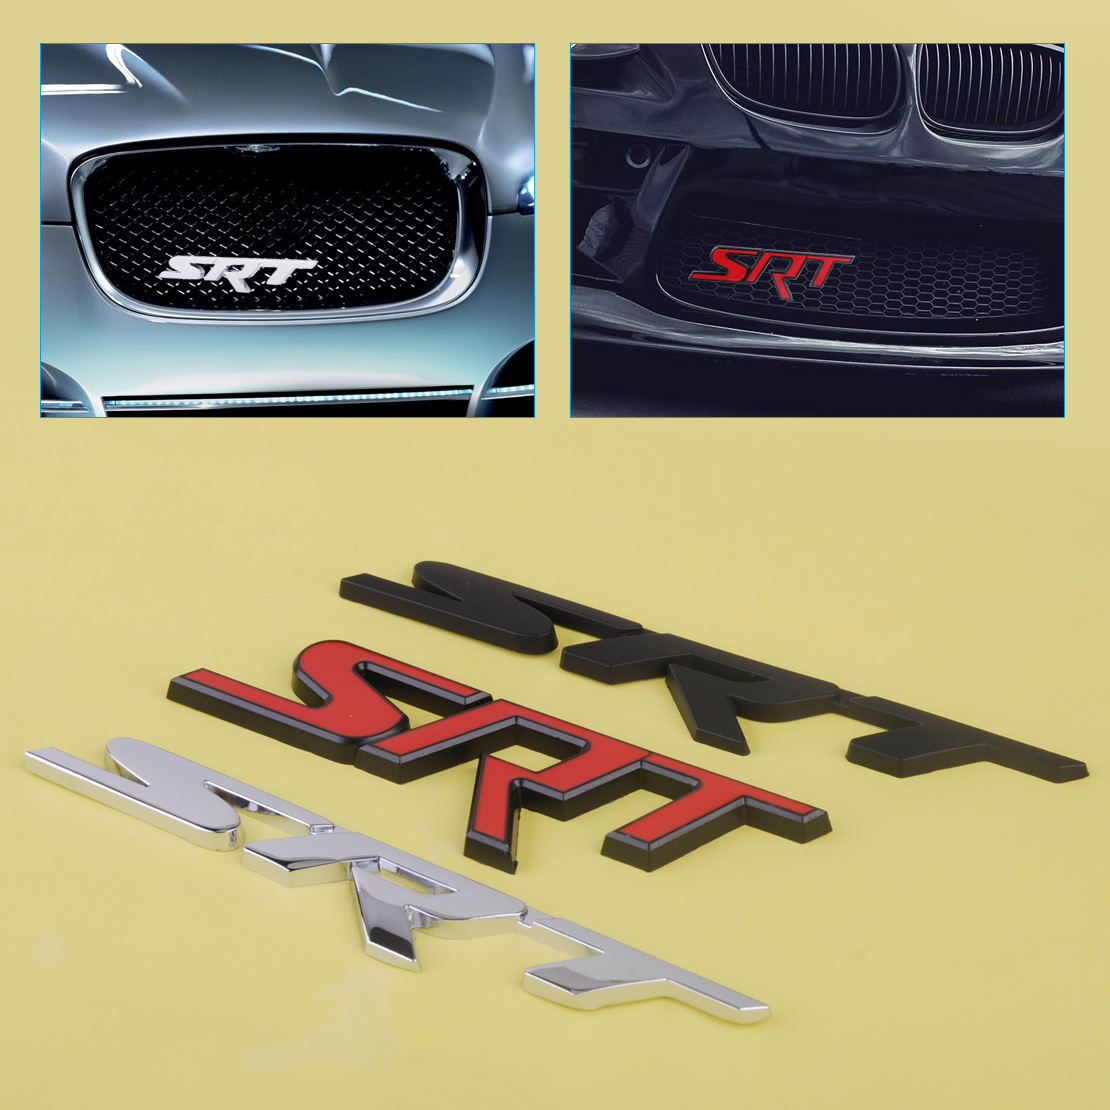 beler 3D Front Grill Grille Metal Badge SRT Letter Emblem fit for Dodge Charger Challenger Ram